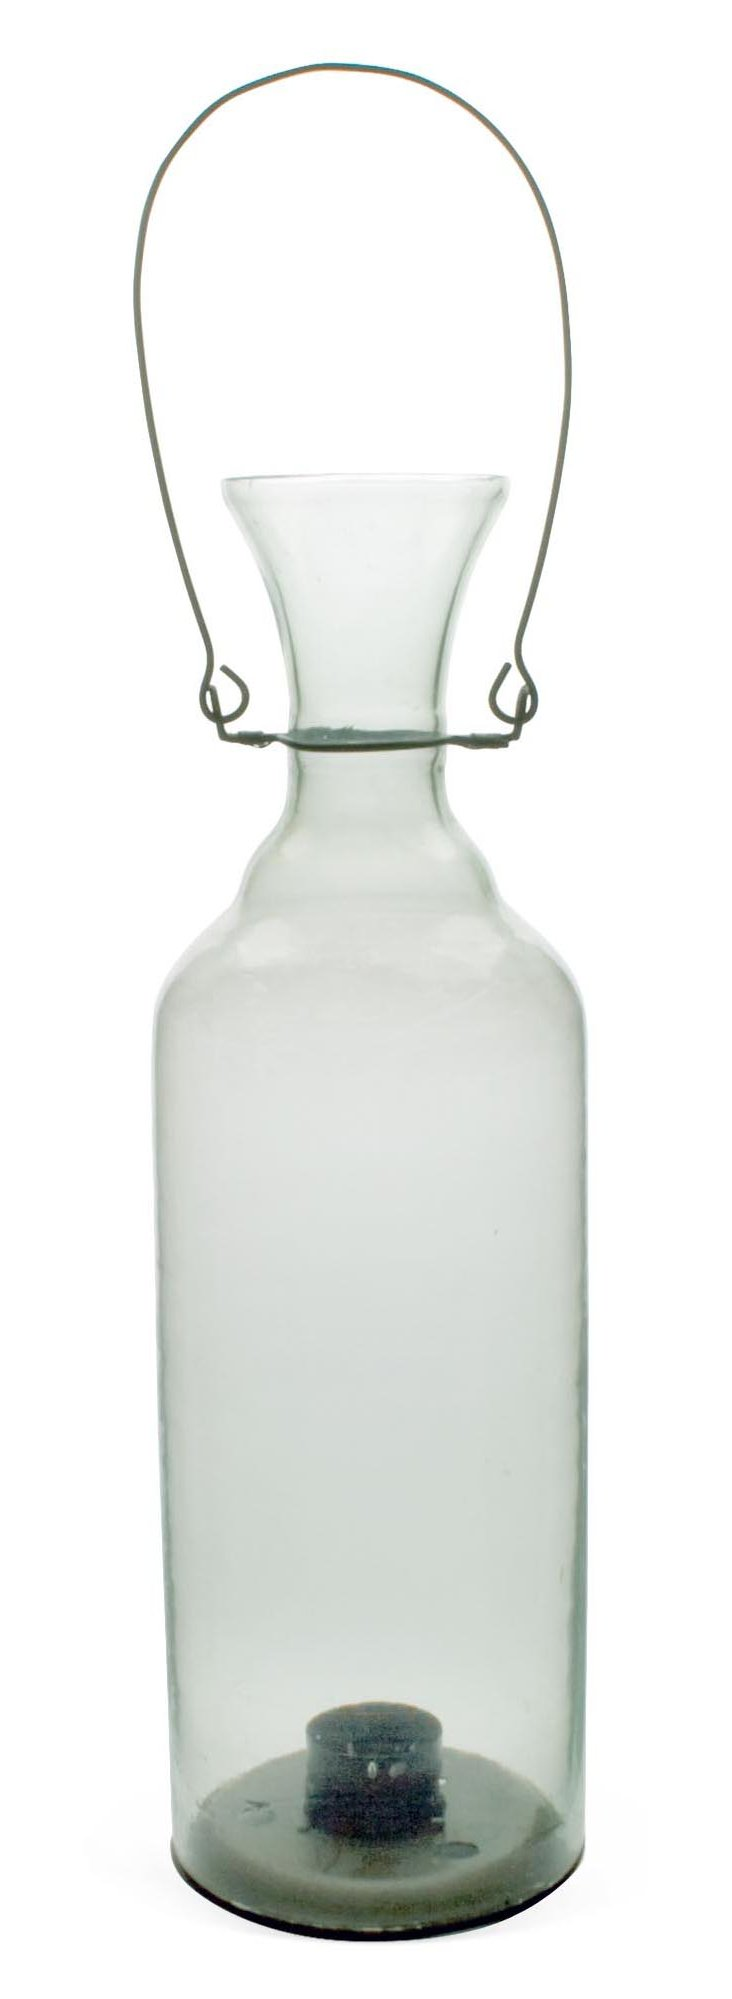 "17"" Tall Hanging Candle Bottle"